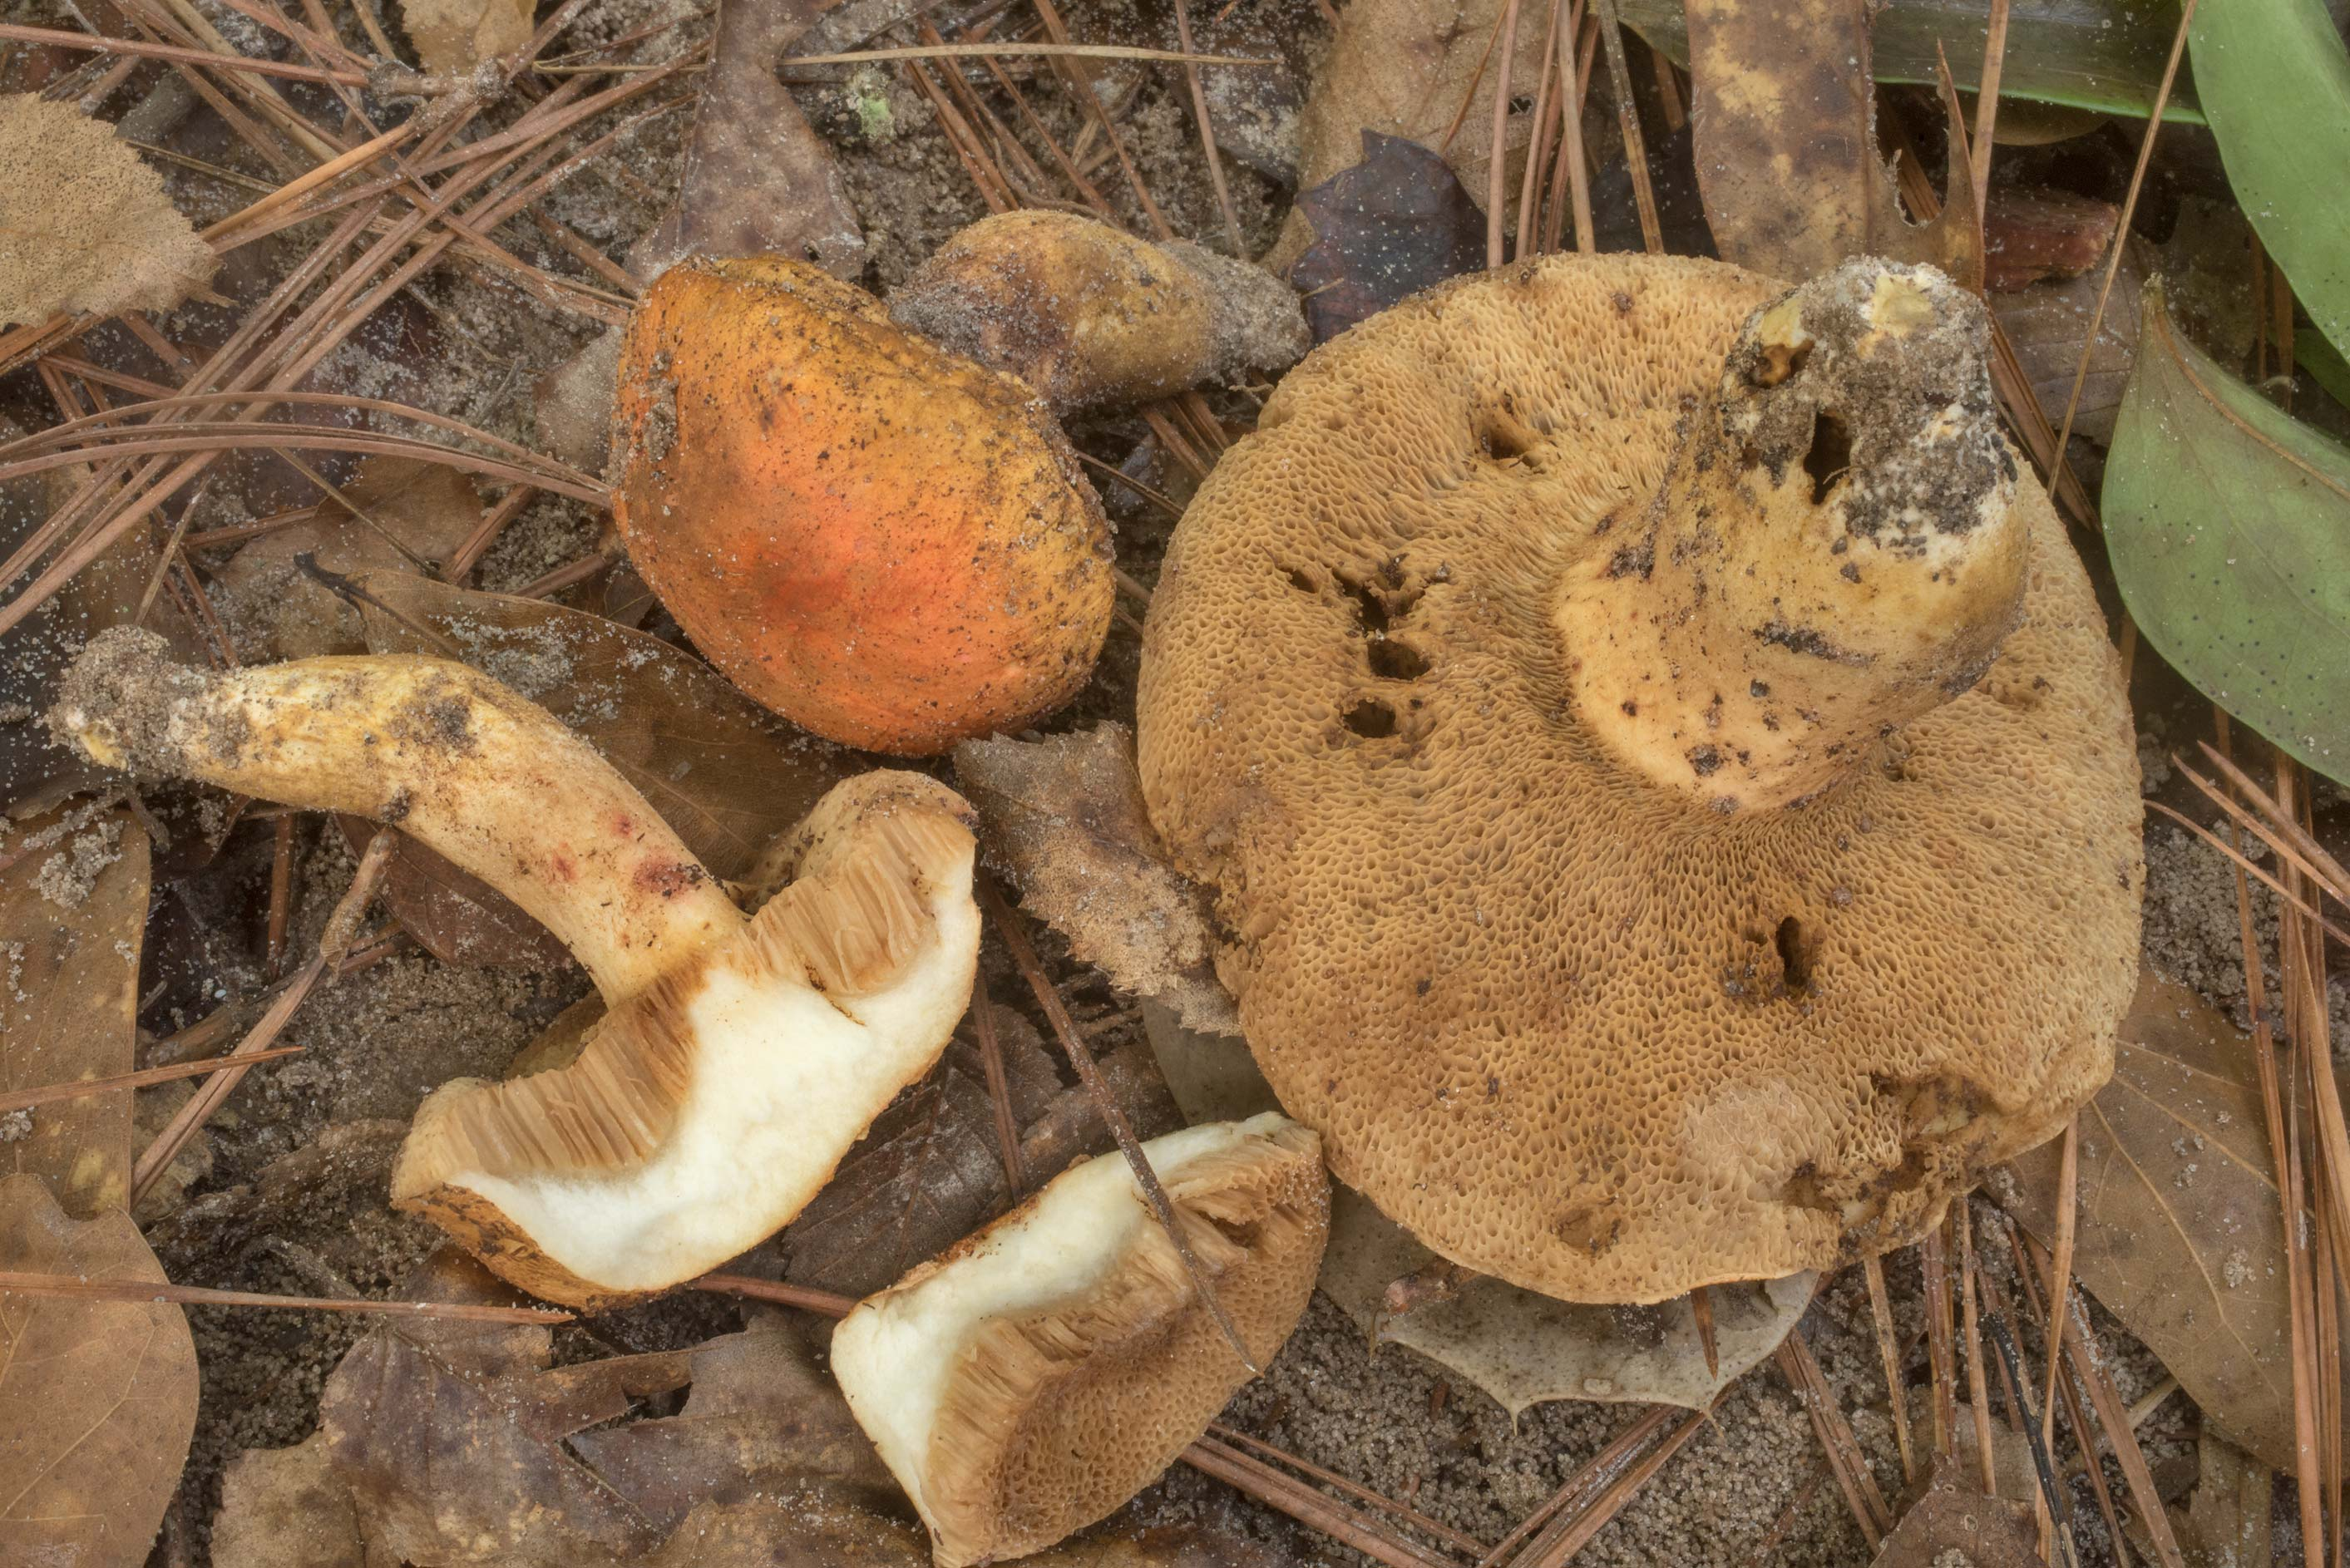 Underside of mature burnt orange bolete mushrooms...National Forest. Shepherd, Texas